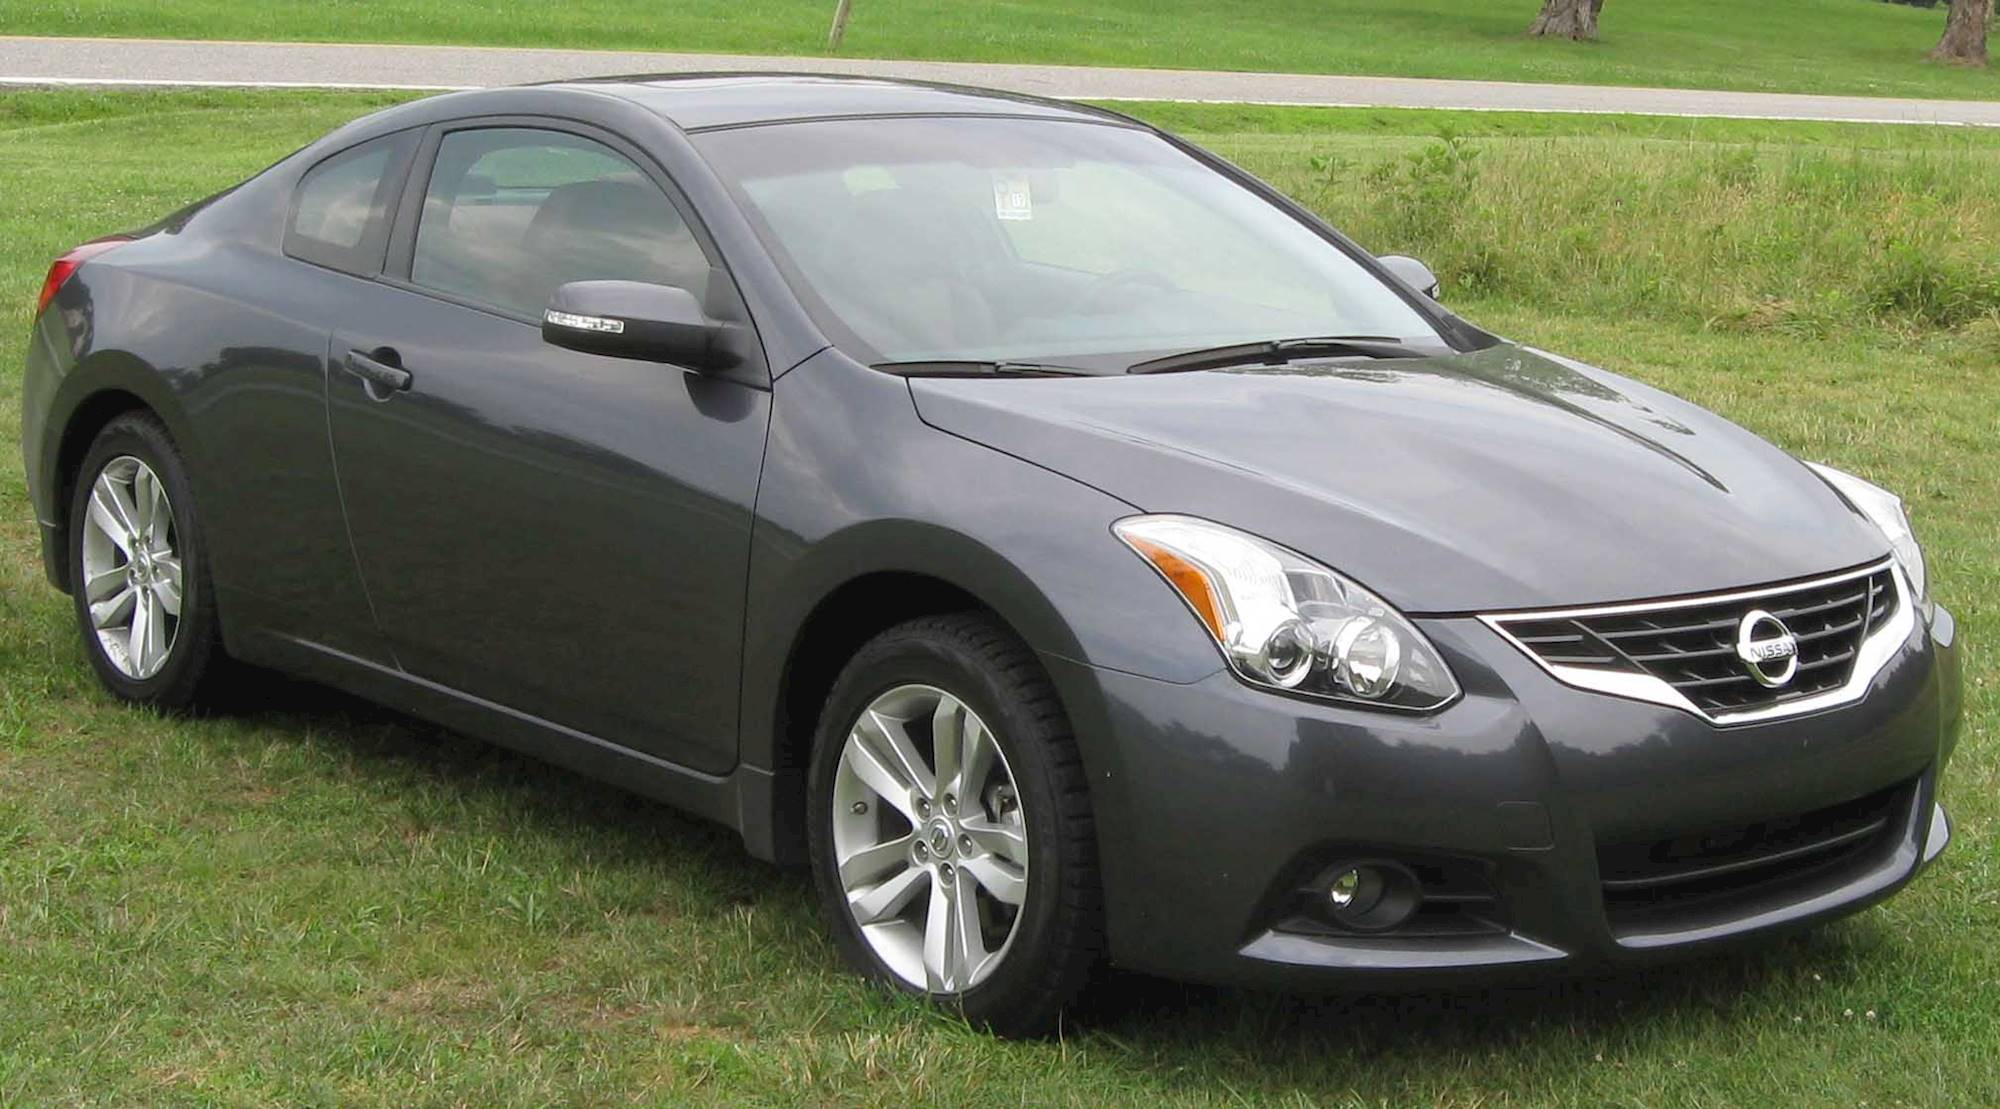 2011 Nissan Altima 2.5 S - Coupe Manual